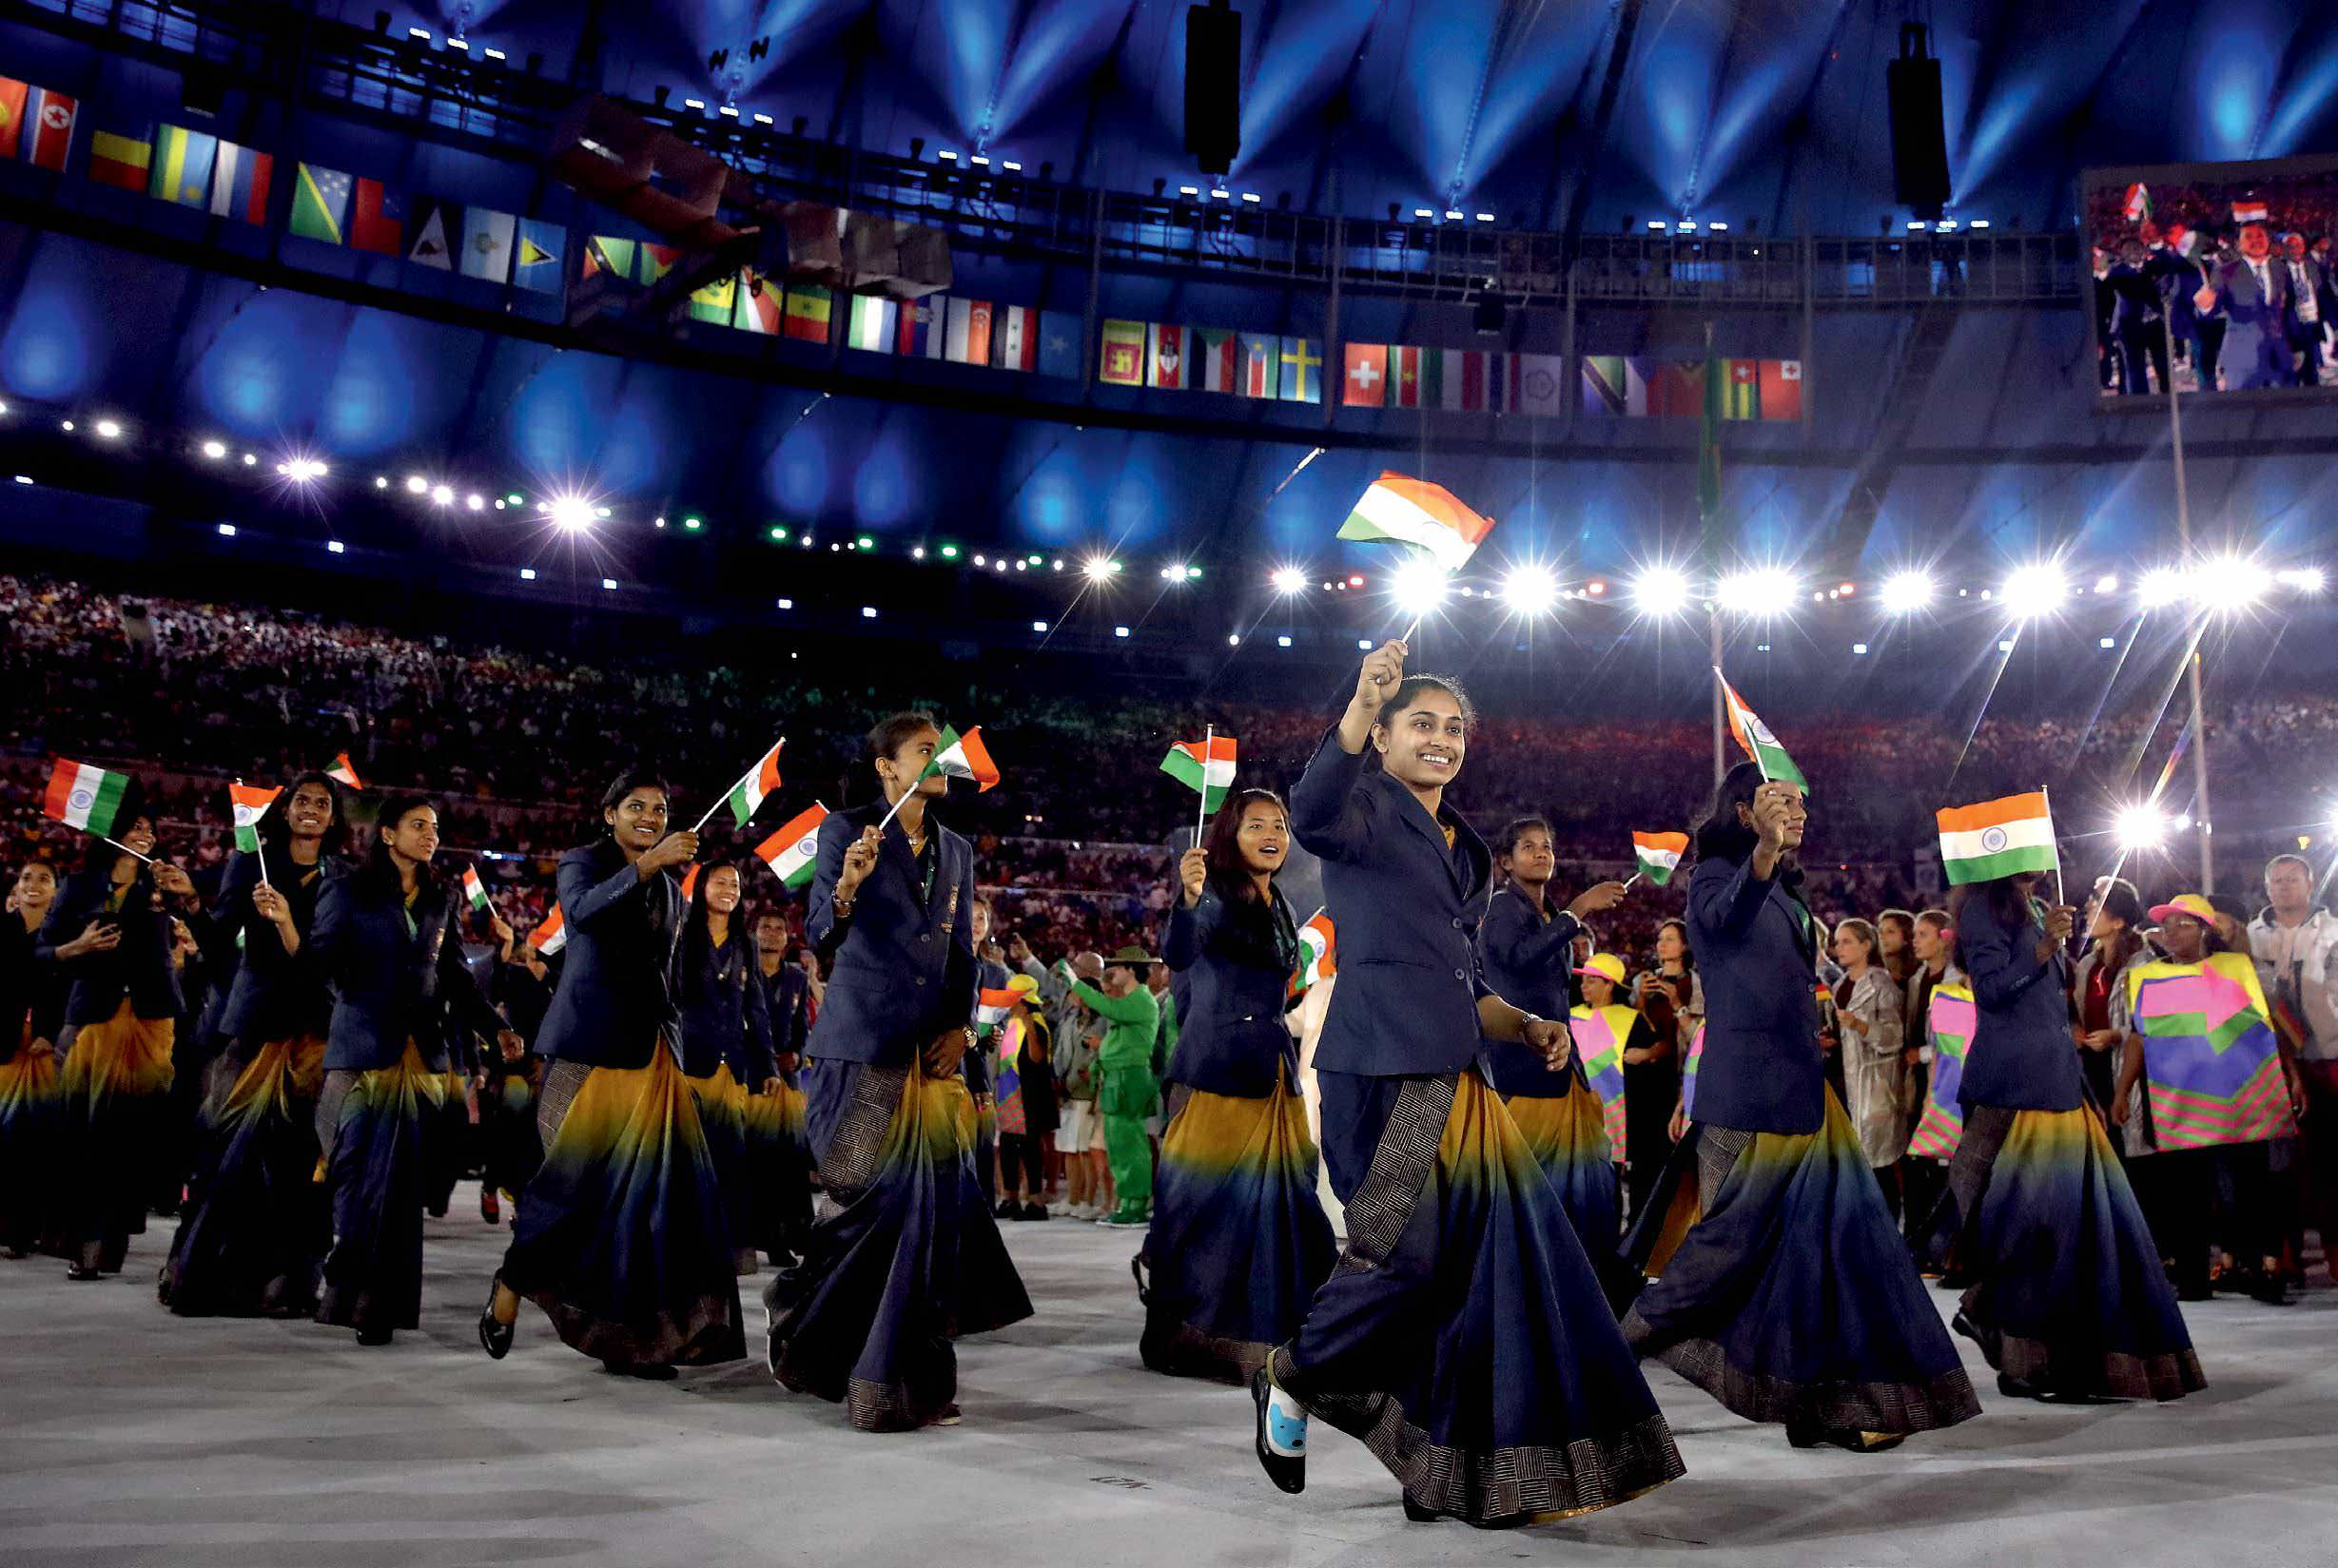 indias performance at london olympics India gave its best performance in the 2012 london olympics by winning 2 silver medals and 4 bronze medals india has won most of their gold medals from hockey.